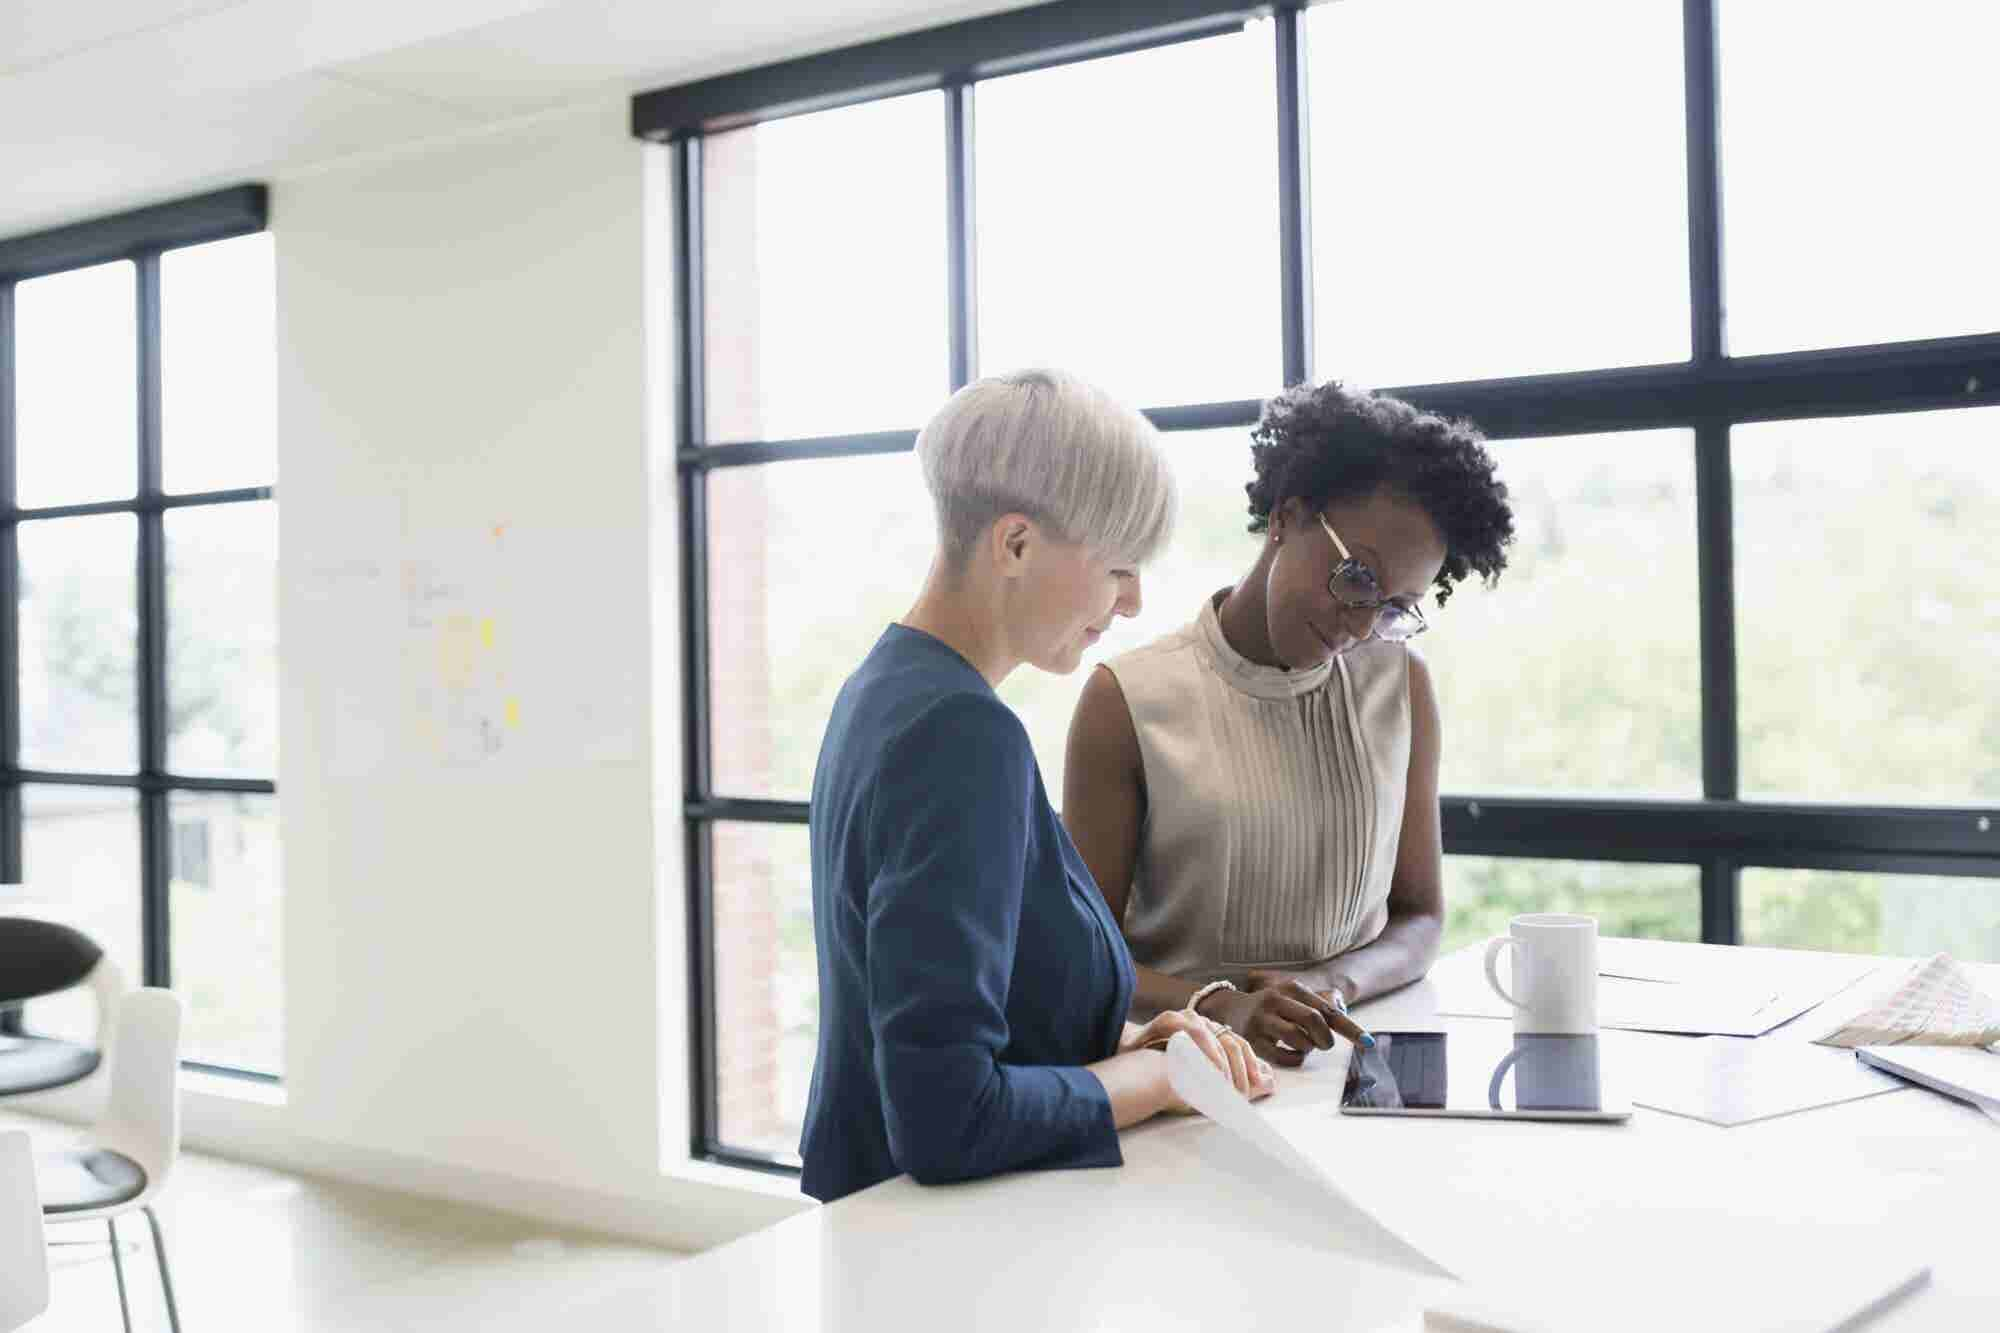 Missing: Women CEOs' Career Development. Here's How to Fix it.